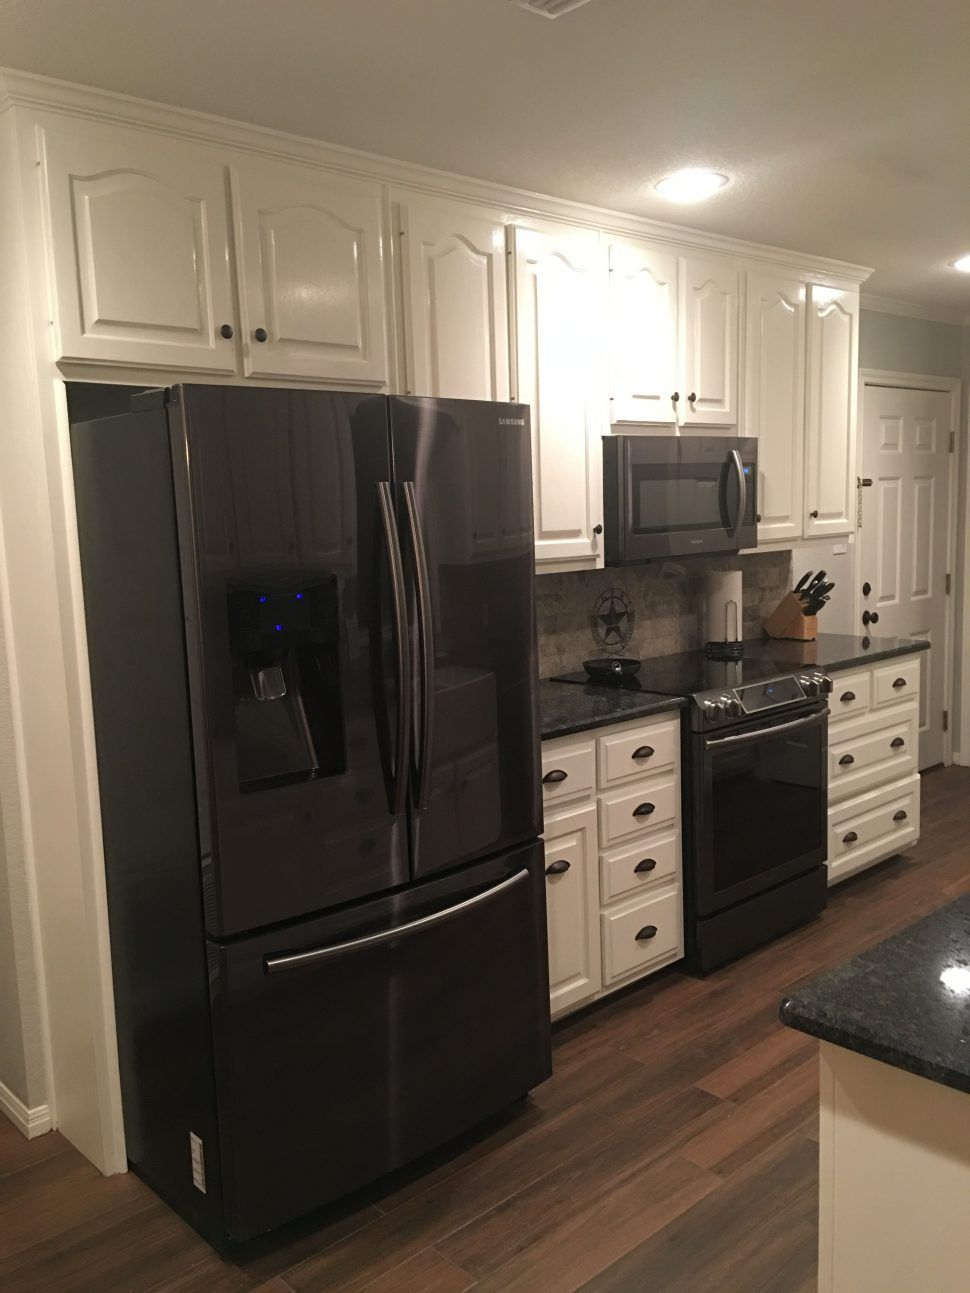 Furniture Winning Black Stainless Steel Appliances Gray Counter